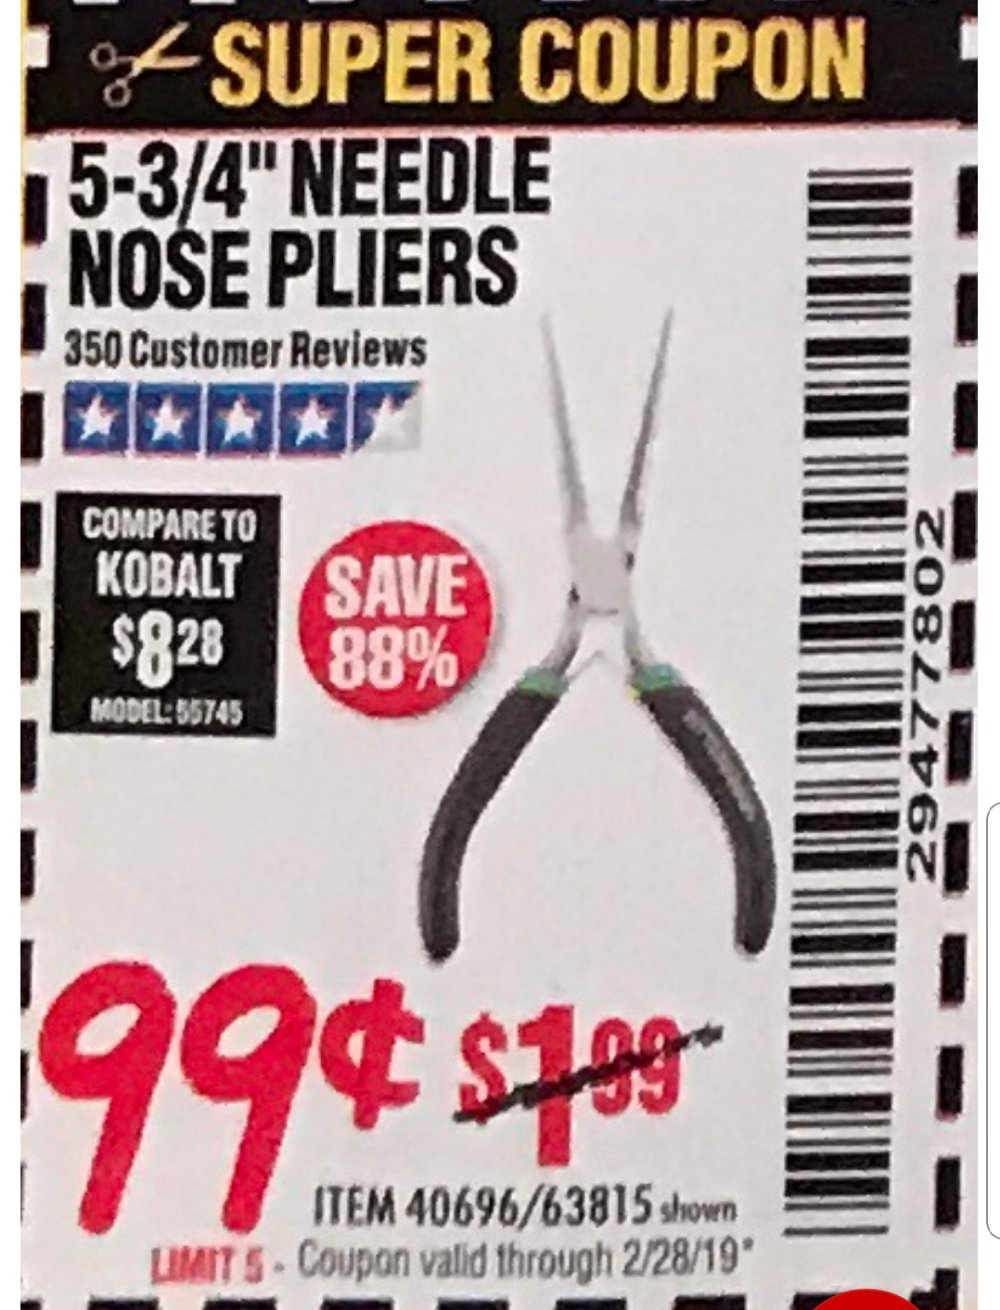 Harbor Freight Coupon, HF Coupons - 5-3/4